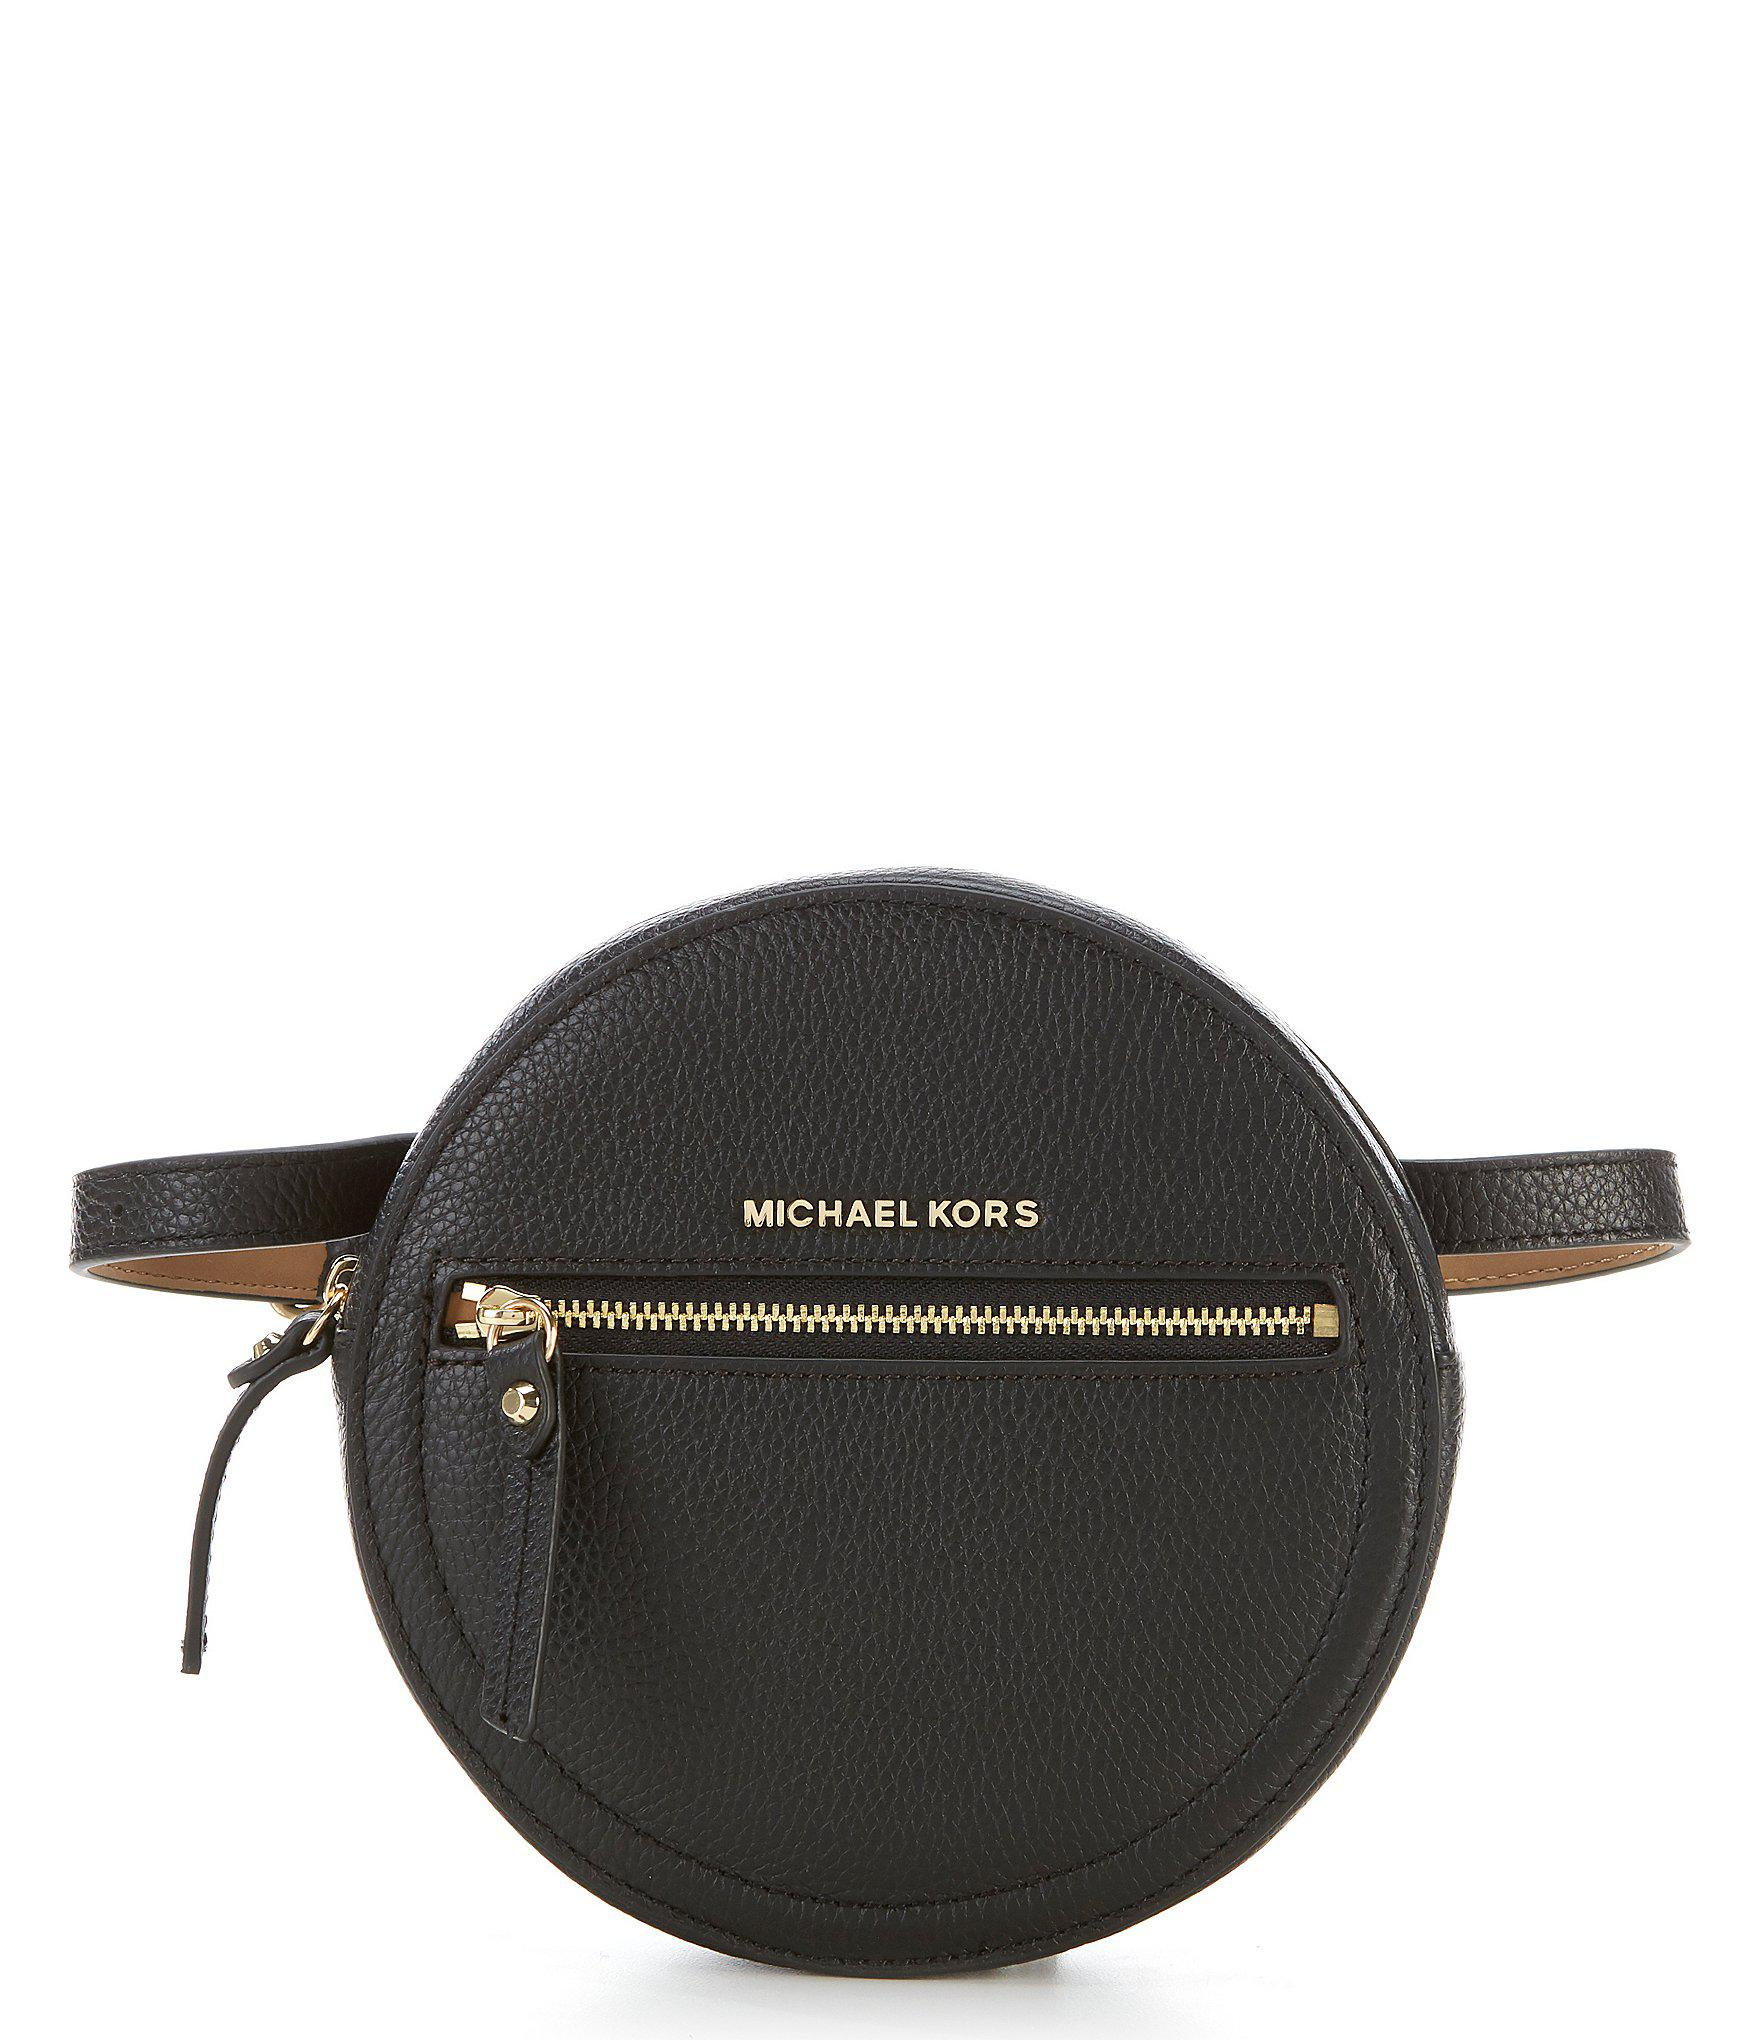 7808b2257b858 Lyst - Michael Kors Round Leather Belt Bag in Black